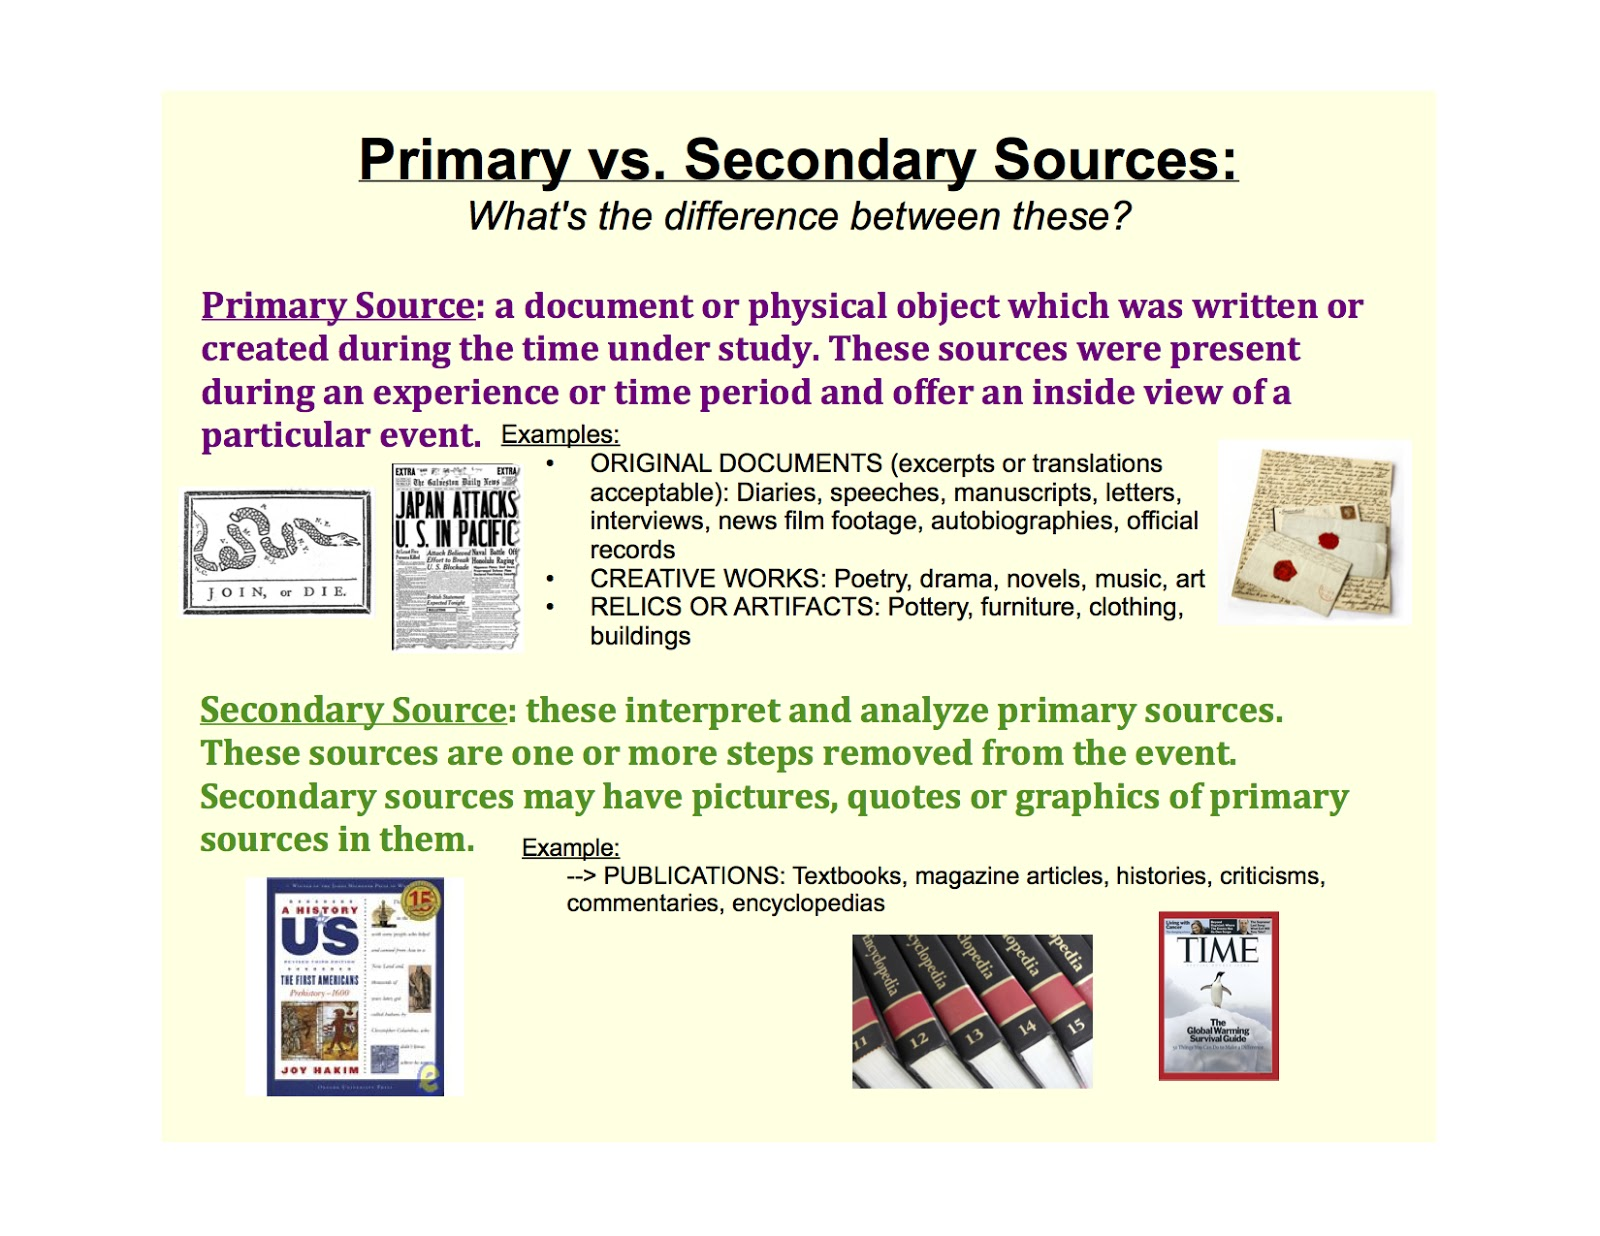 Worksheets Primary And Secondary Sources Worksheet primary and secondary sources targer golden dragon co sources